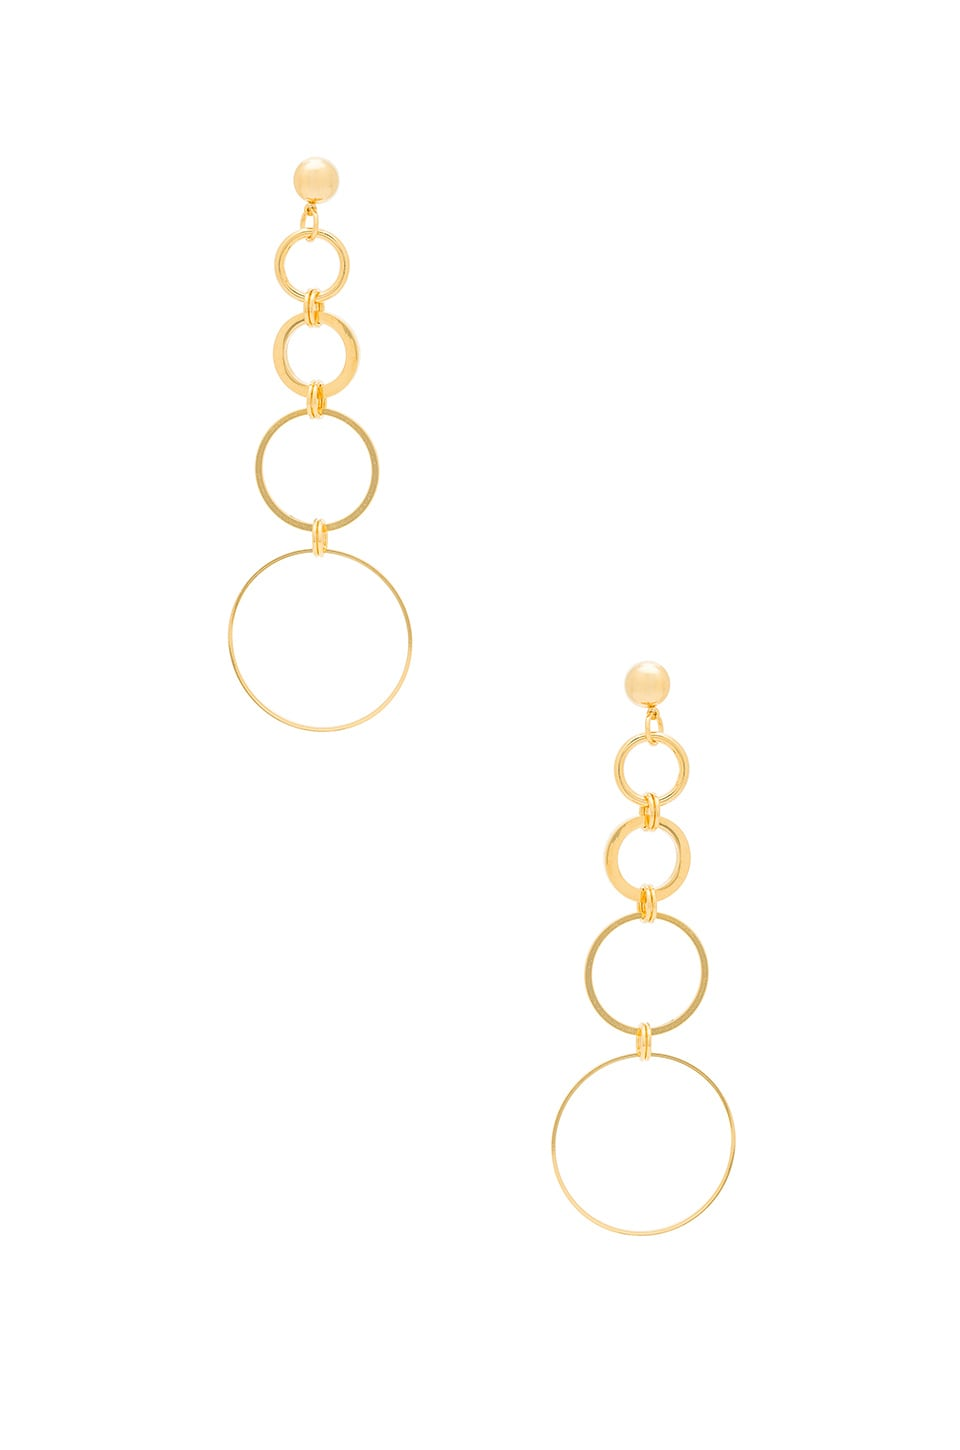 LARUICCI Cascading Circles Earring in Gold